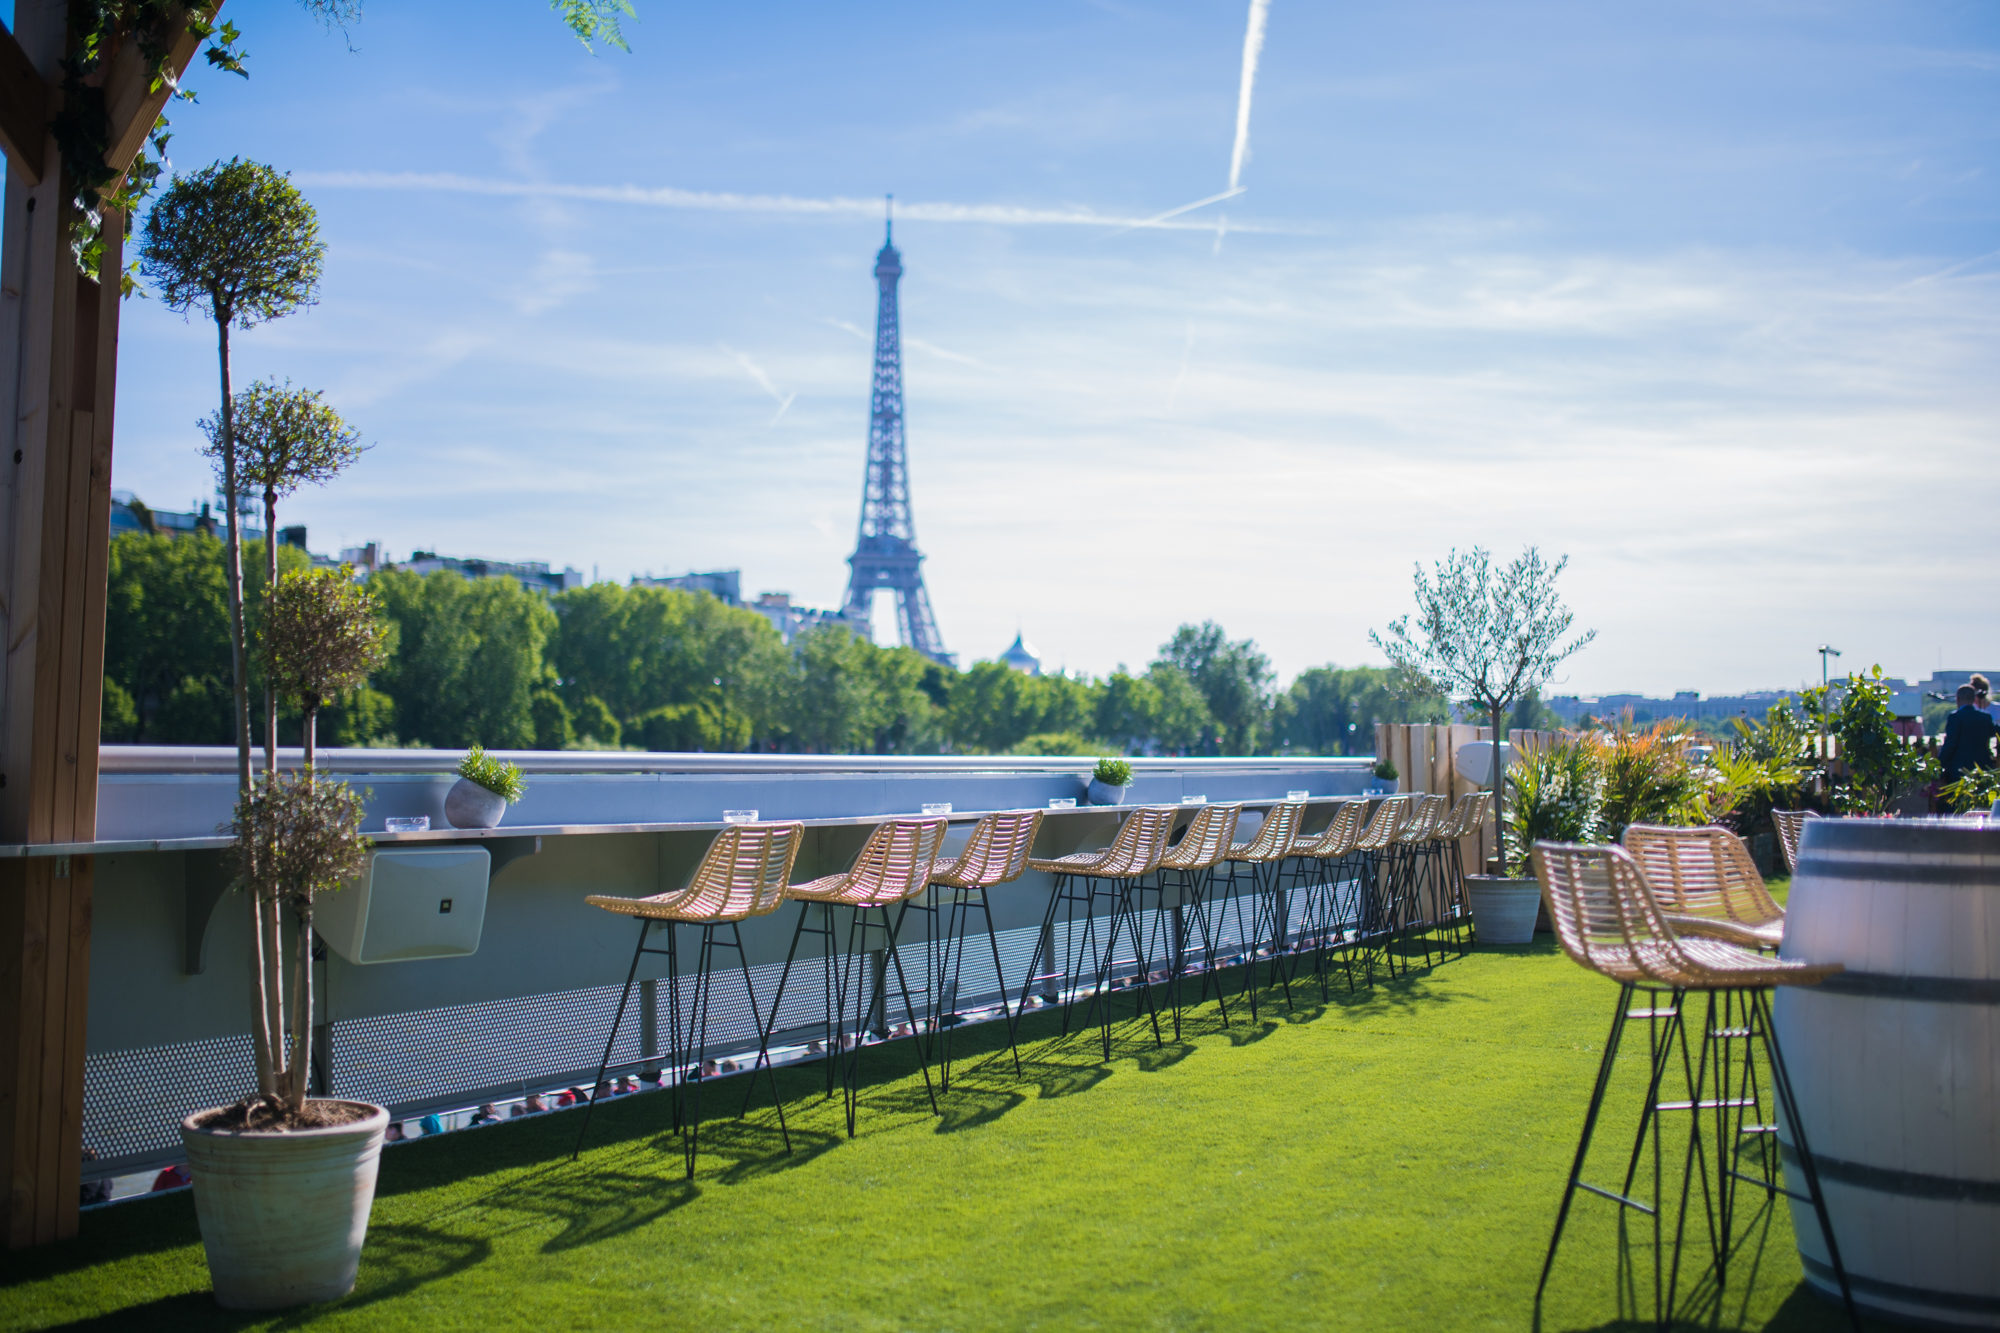 The view of the Eiffel Tower from the top of the barge boat bar Mademoiselle Mouche.